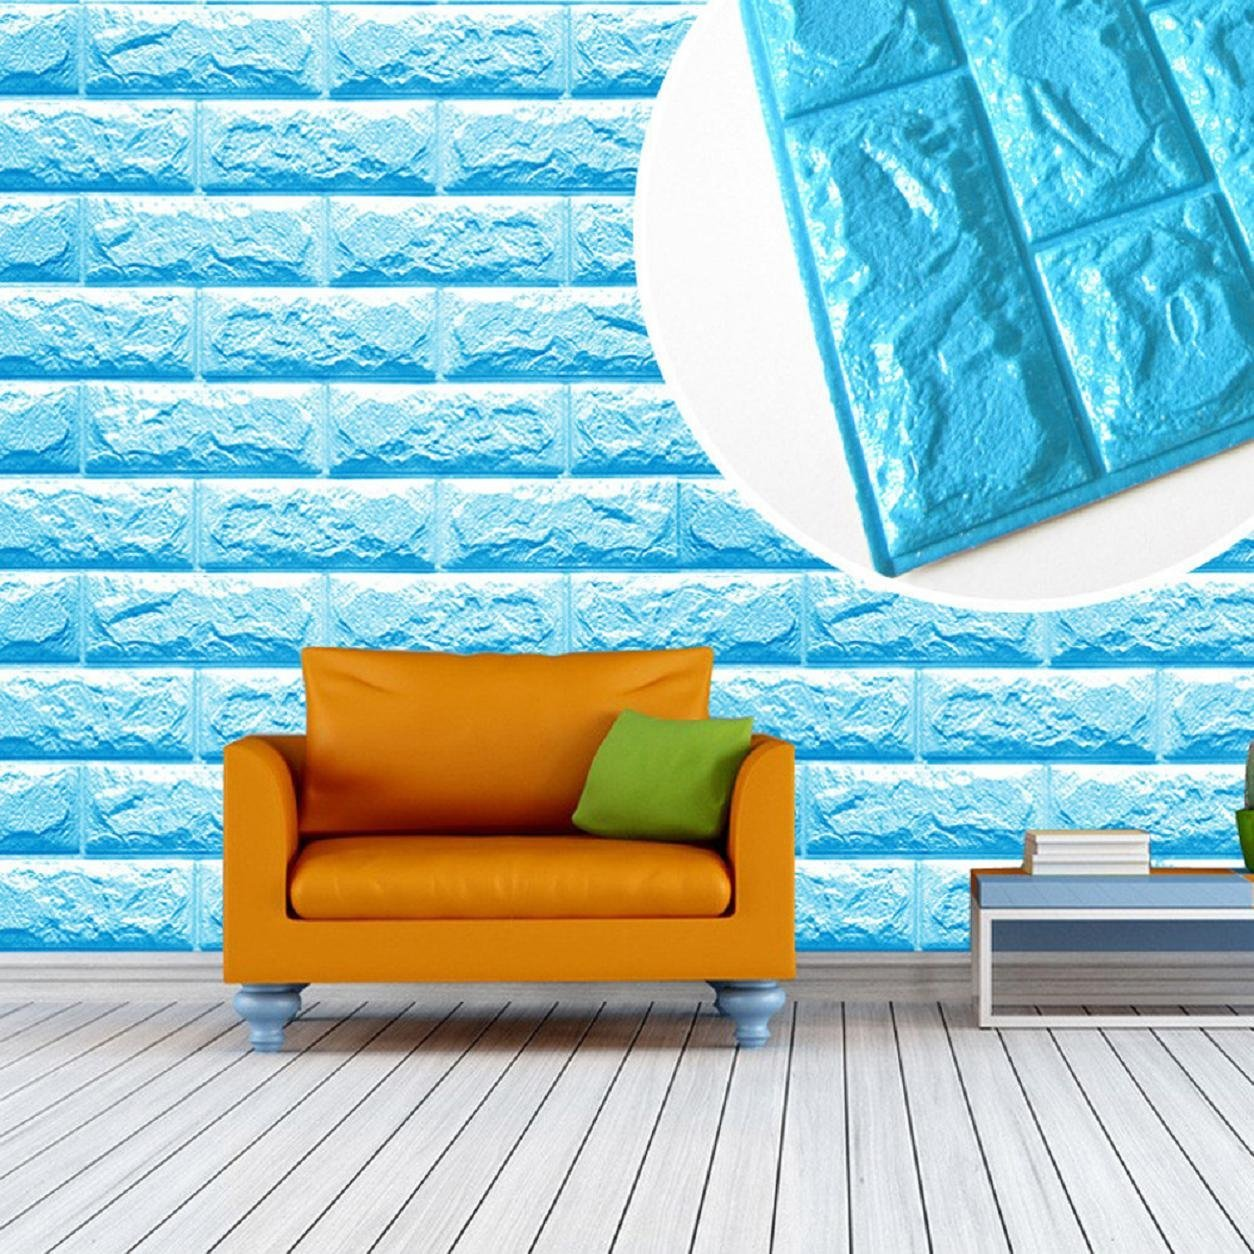 Get Quotations Kemilove PE Foam 3D Wallpaper DIY Wall Stickers Decor Embossed Brick Stone Blue